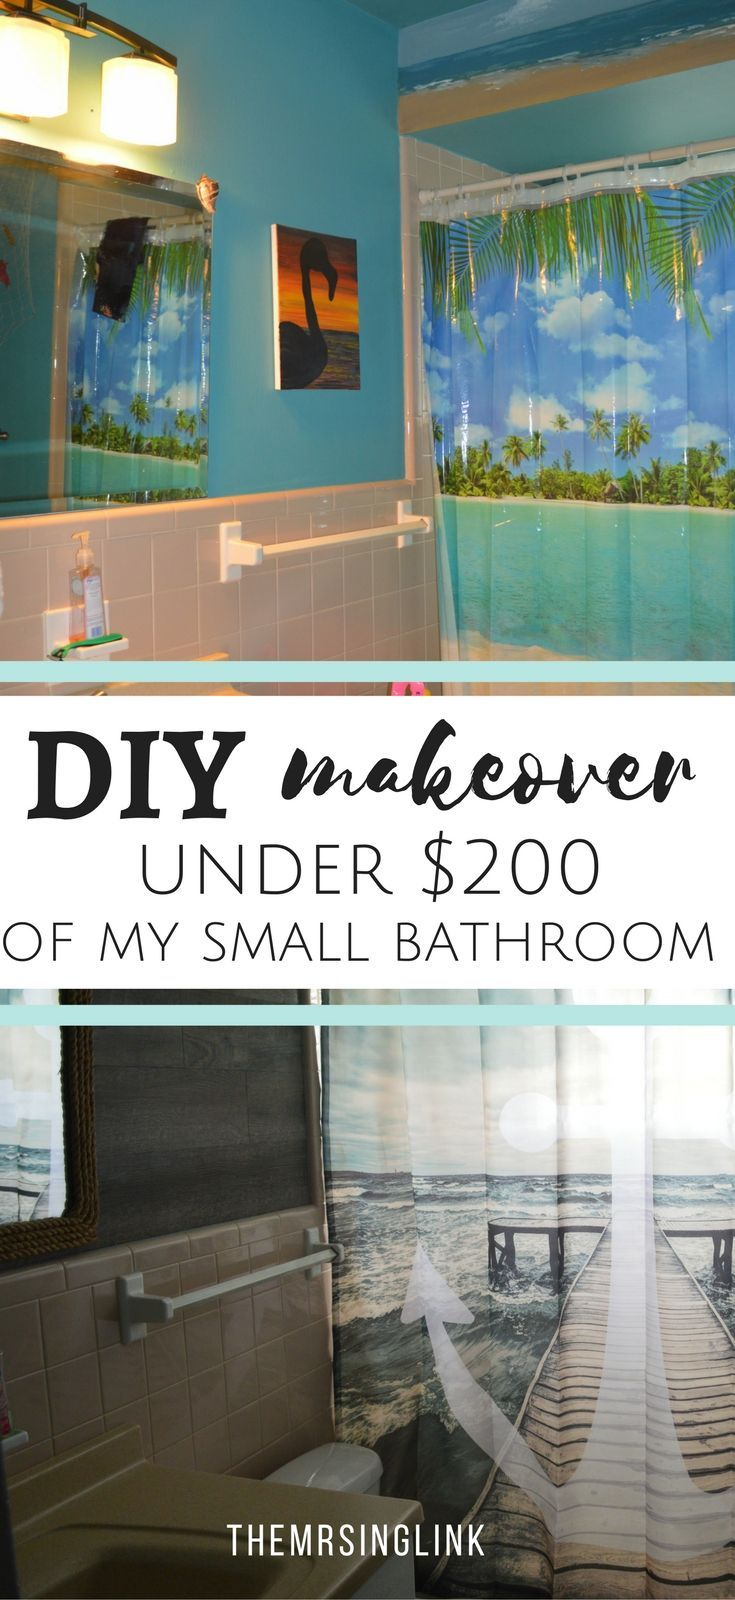 Design Megillah Bathroom Redesign For Under 200: DIY Small Bathroom Makeover Under $200